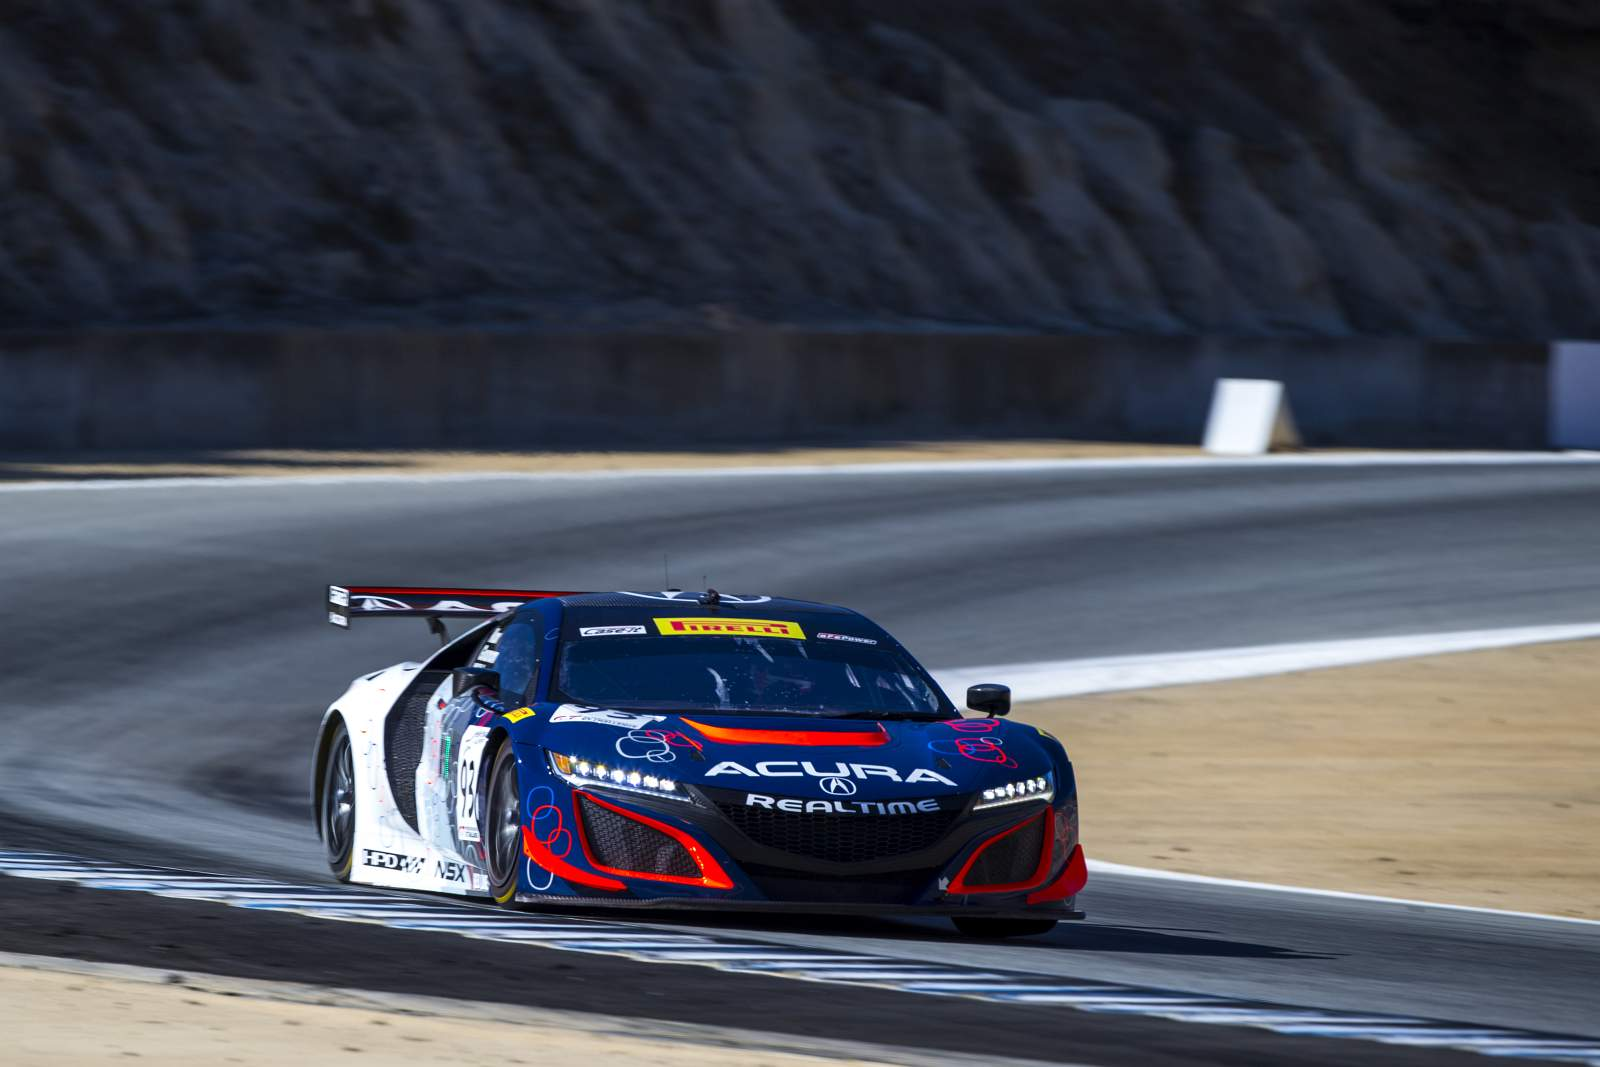 peter-kox-realtime-racing-pirelli-world-challenge-california-089